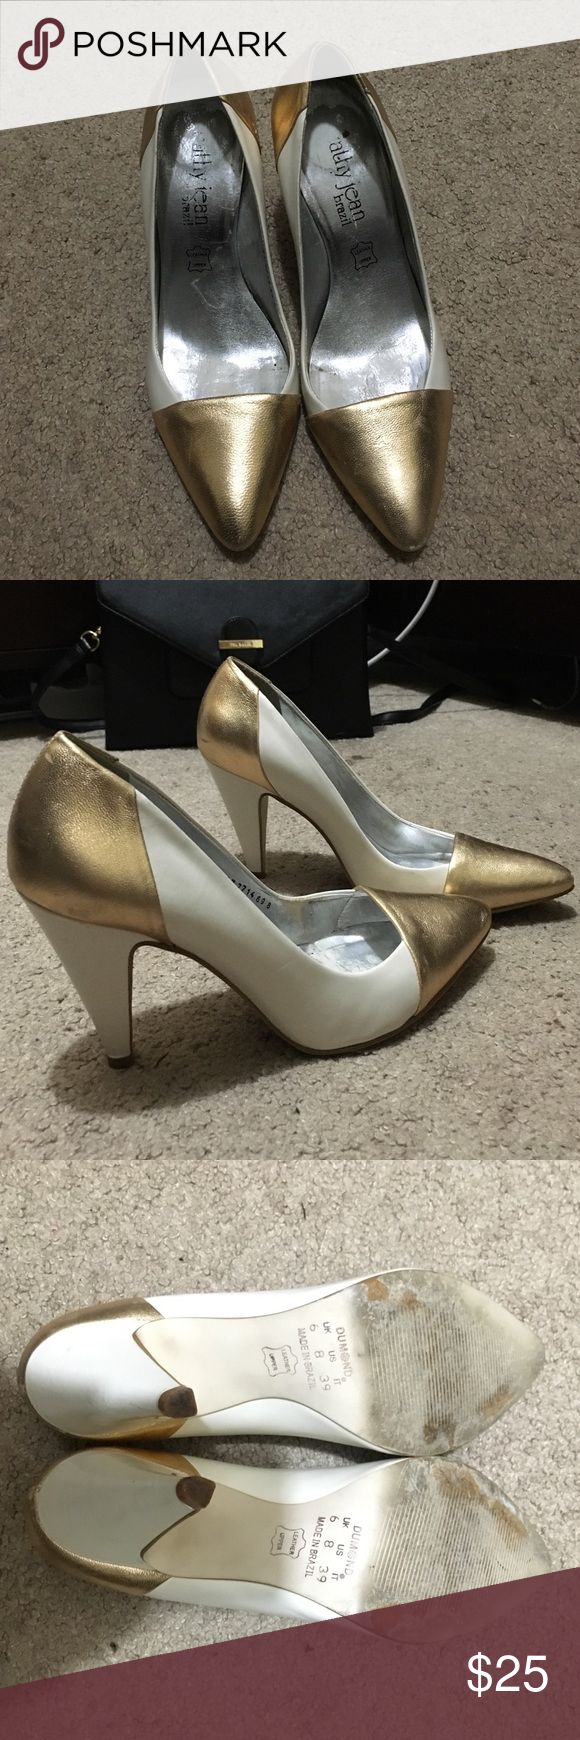 Cute white and gold pumps Cute, size 8 white pumps with gold accent on the toe and heel. Shoes were made in Brazil. Cathy Jean Shoes Heels